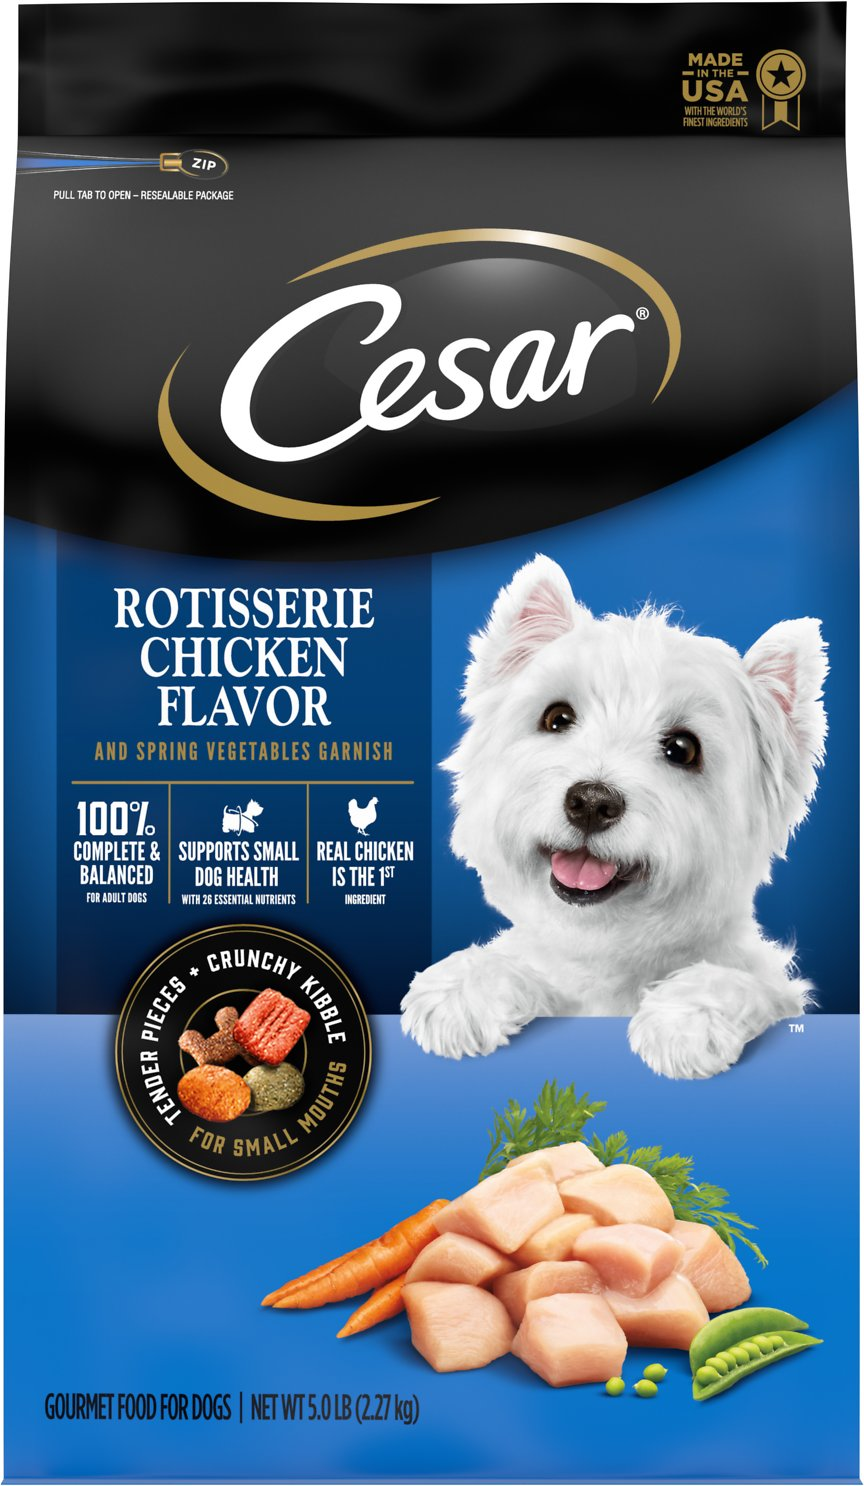 White Dog On Cesar Dog Food